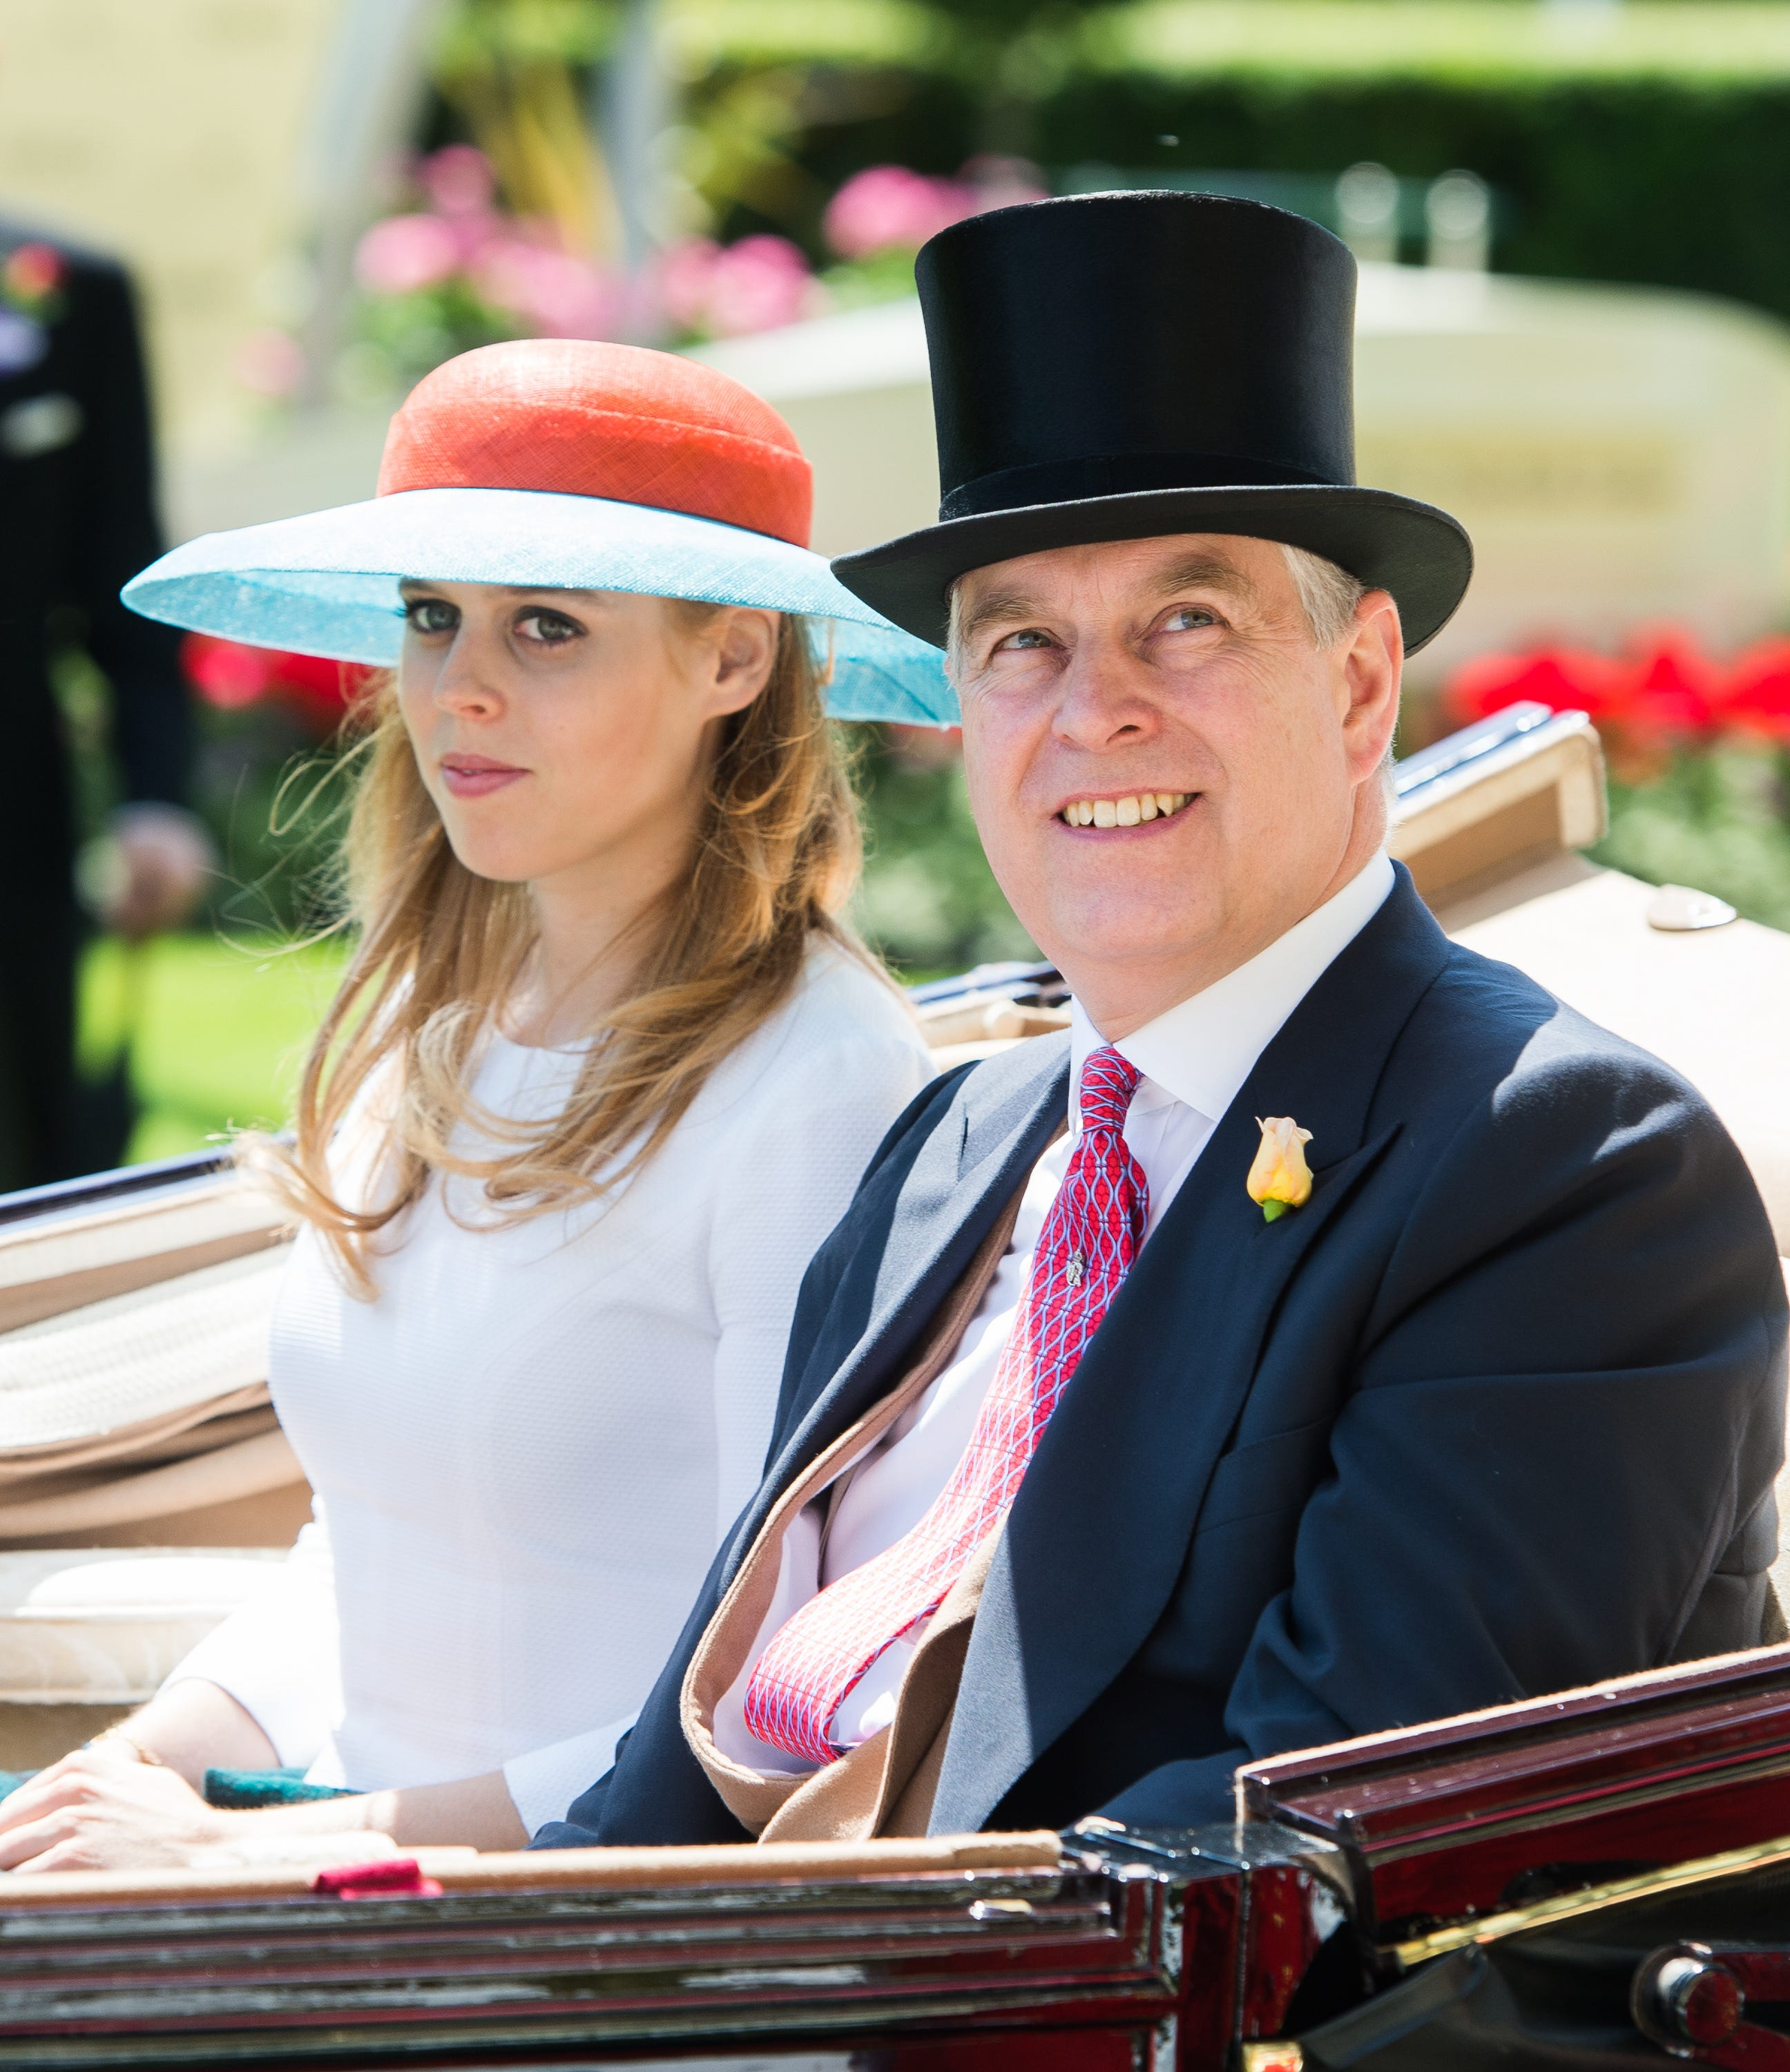 Prince Andrew: May 29 royal wedding set after Prince...